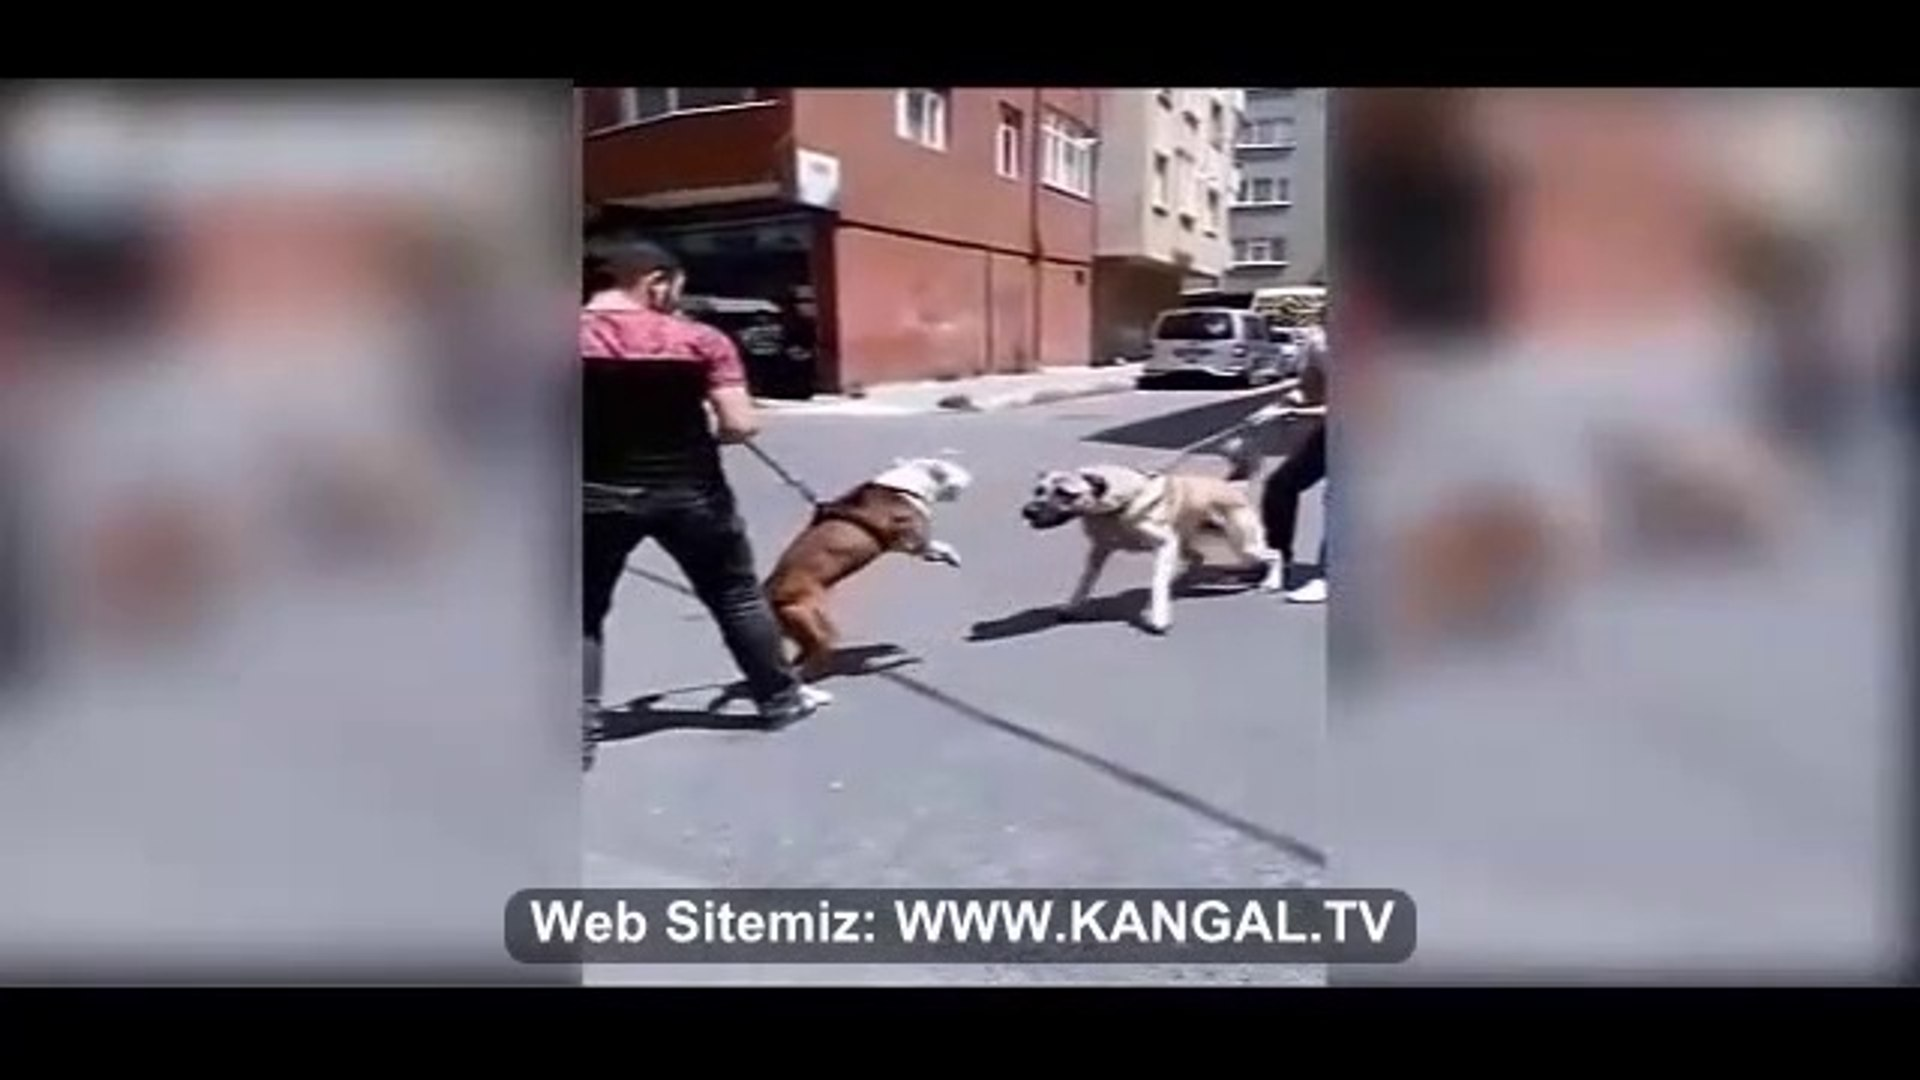 PiTBULL ve ANADOLU COBAN KOPEGi ATISMA - PiTBULL DOG vs ANATOLiAN SHEPHERD DOG